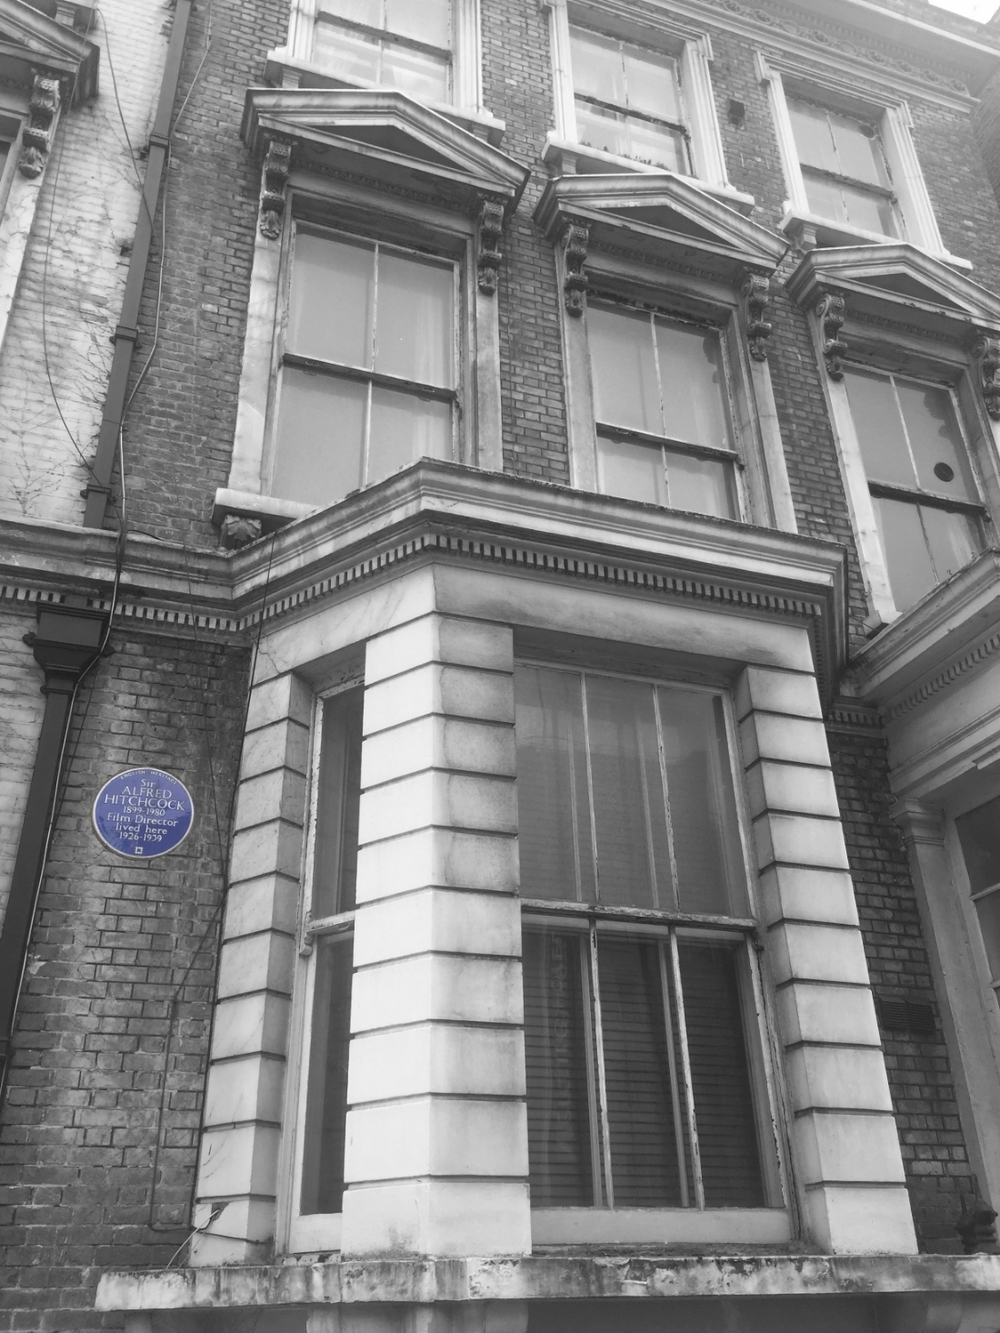 Alfred Hitchcock's former creepy house in Kensington, London.